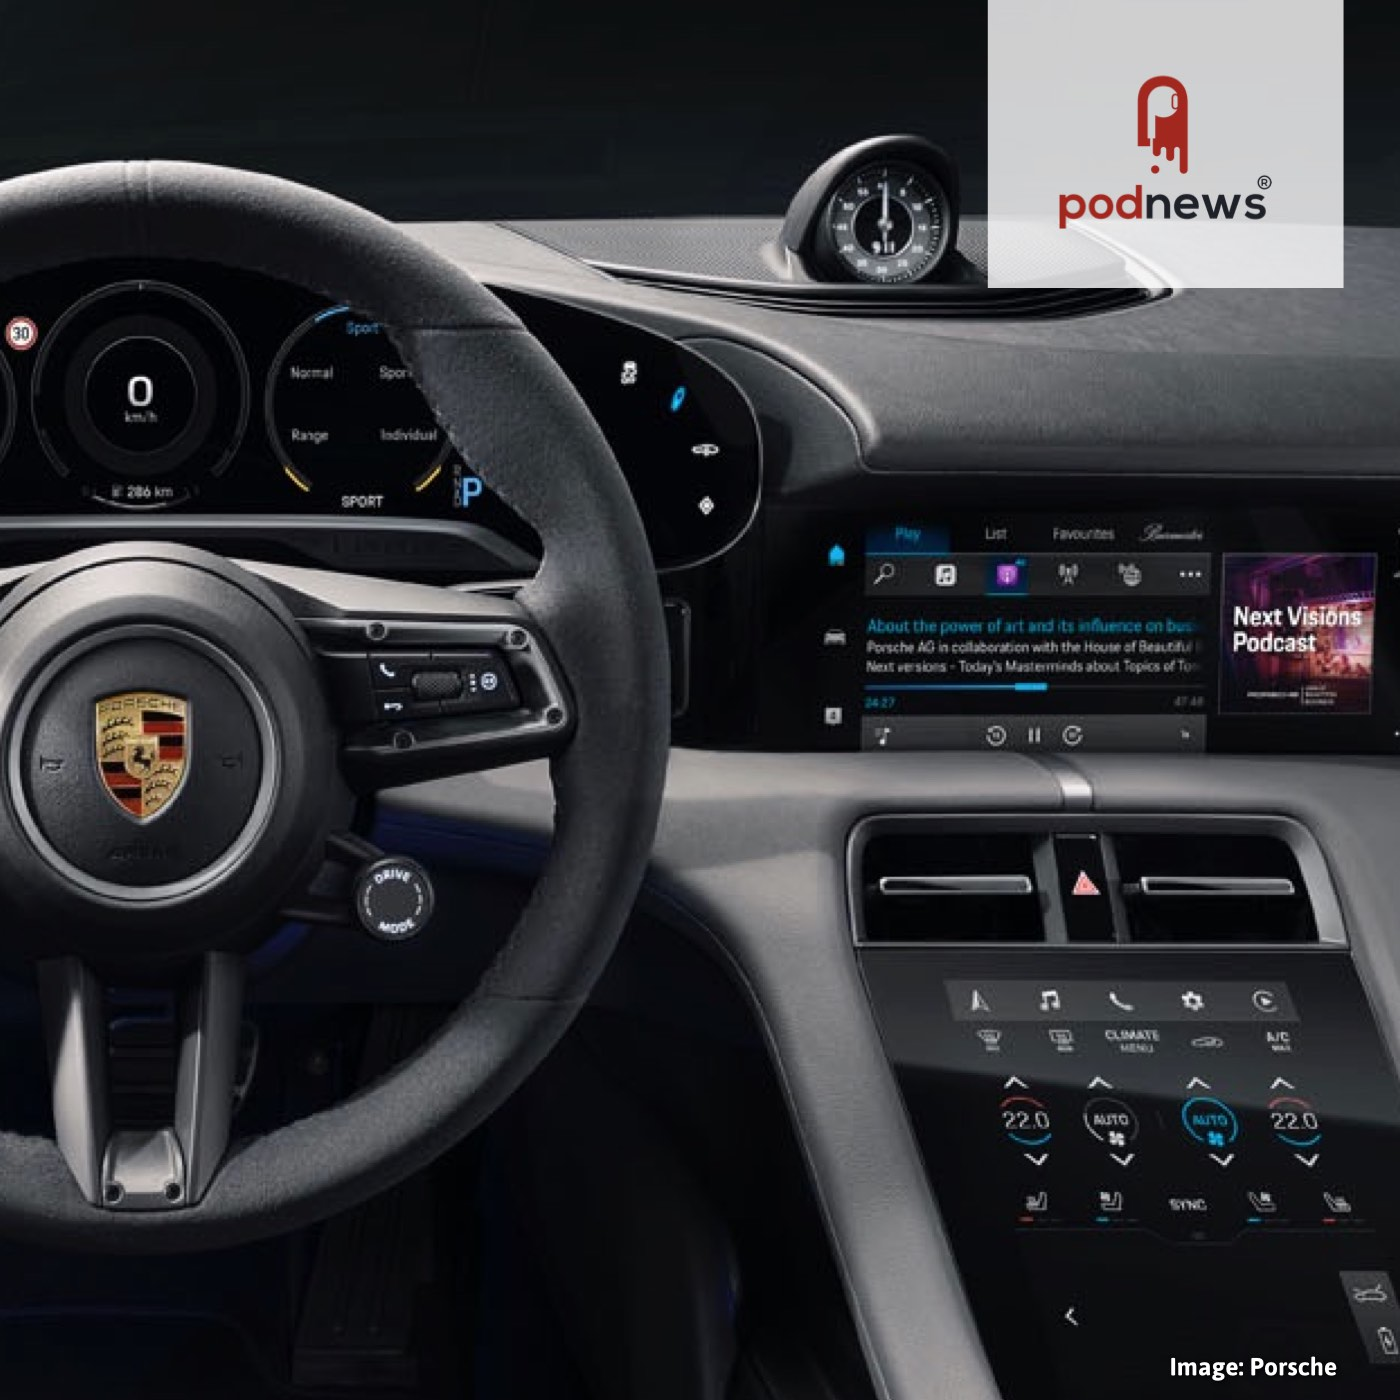 This Porsche comes with Apple Podcasts